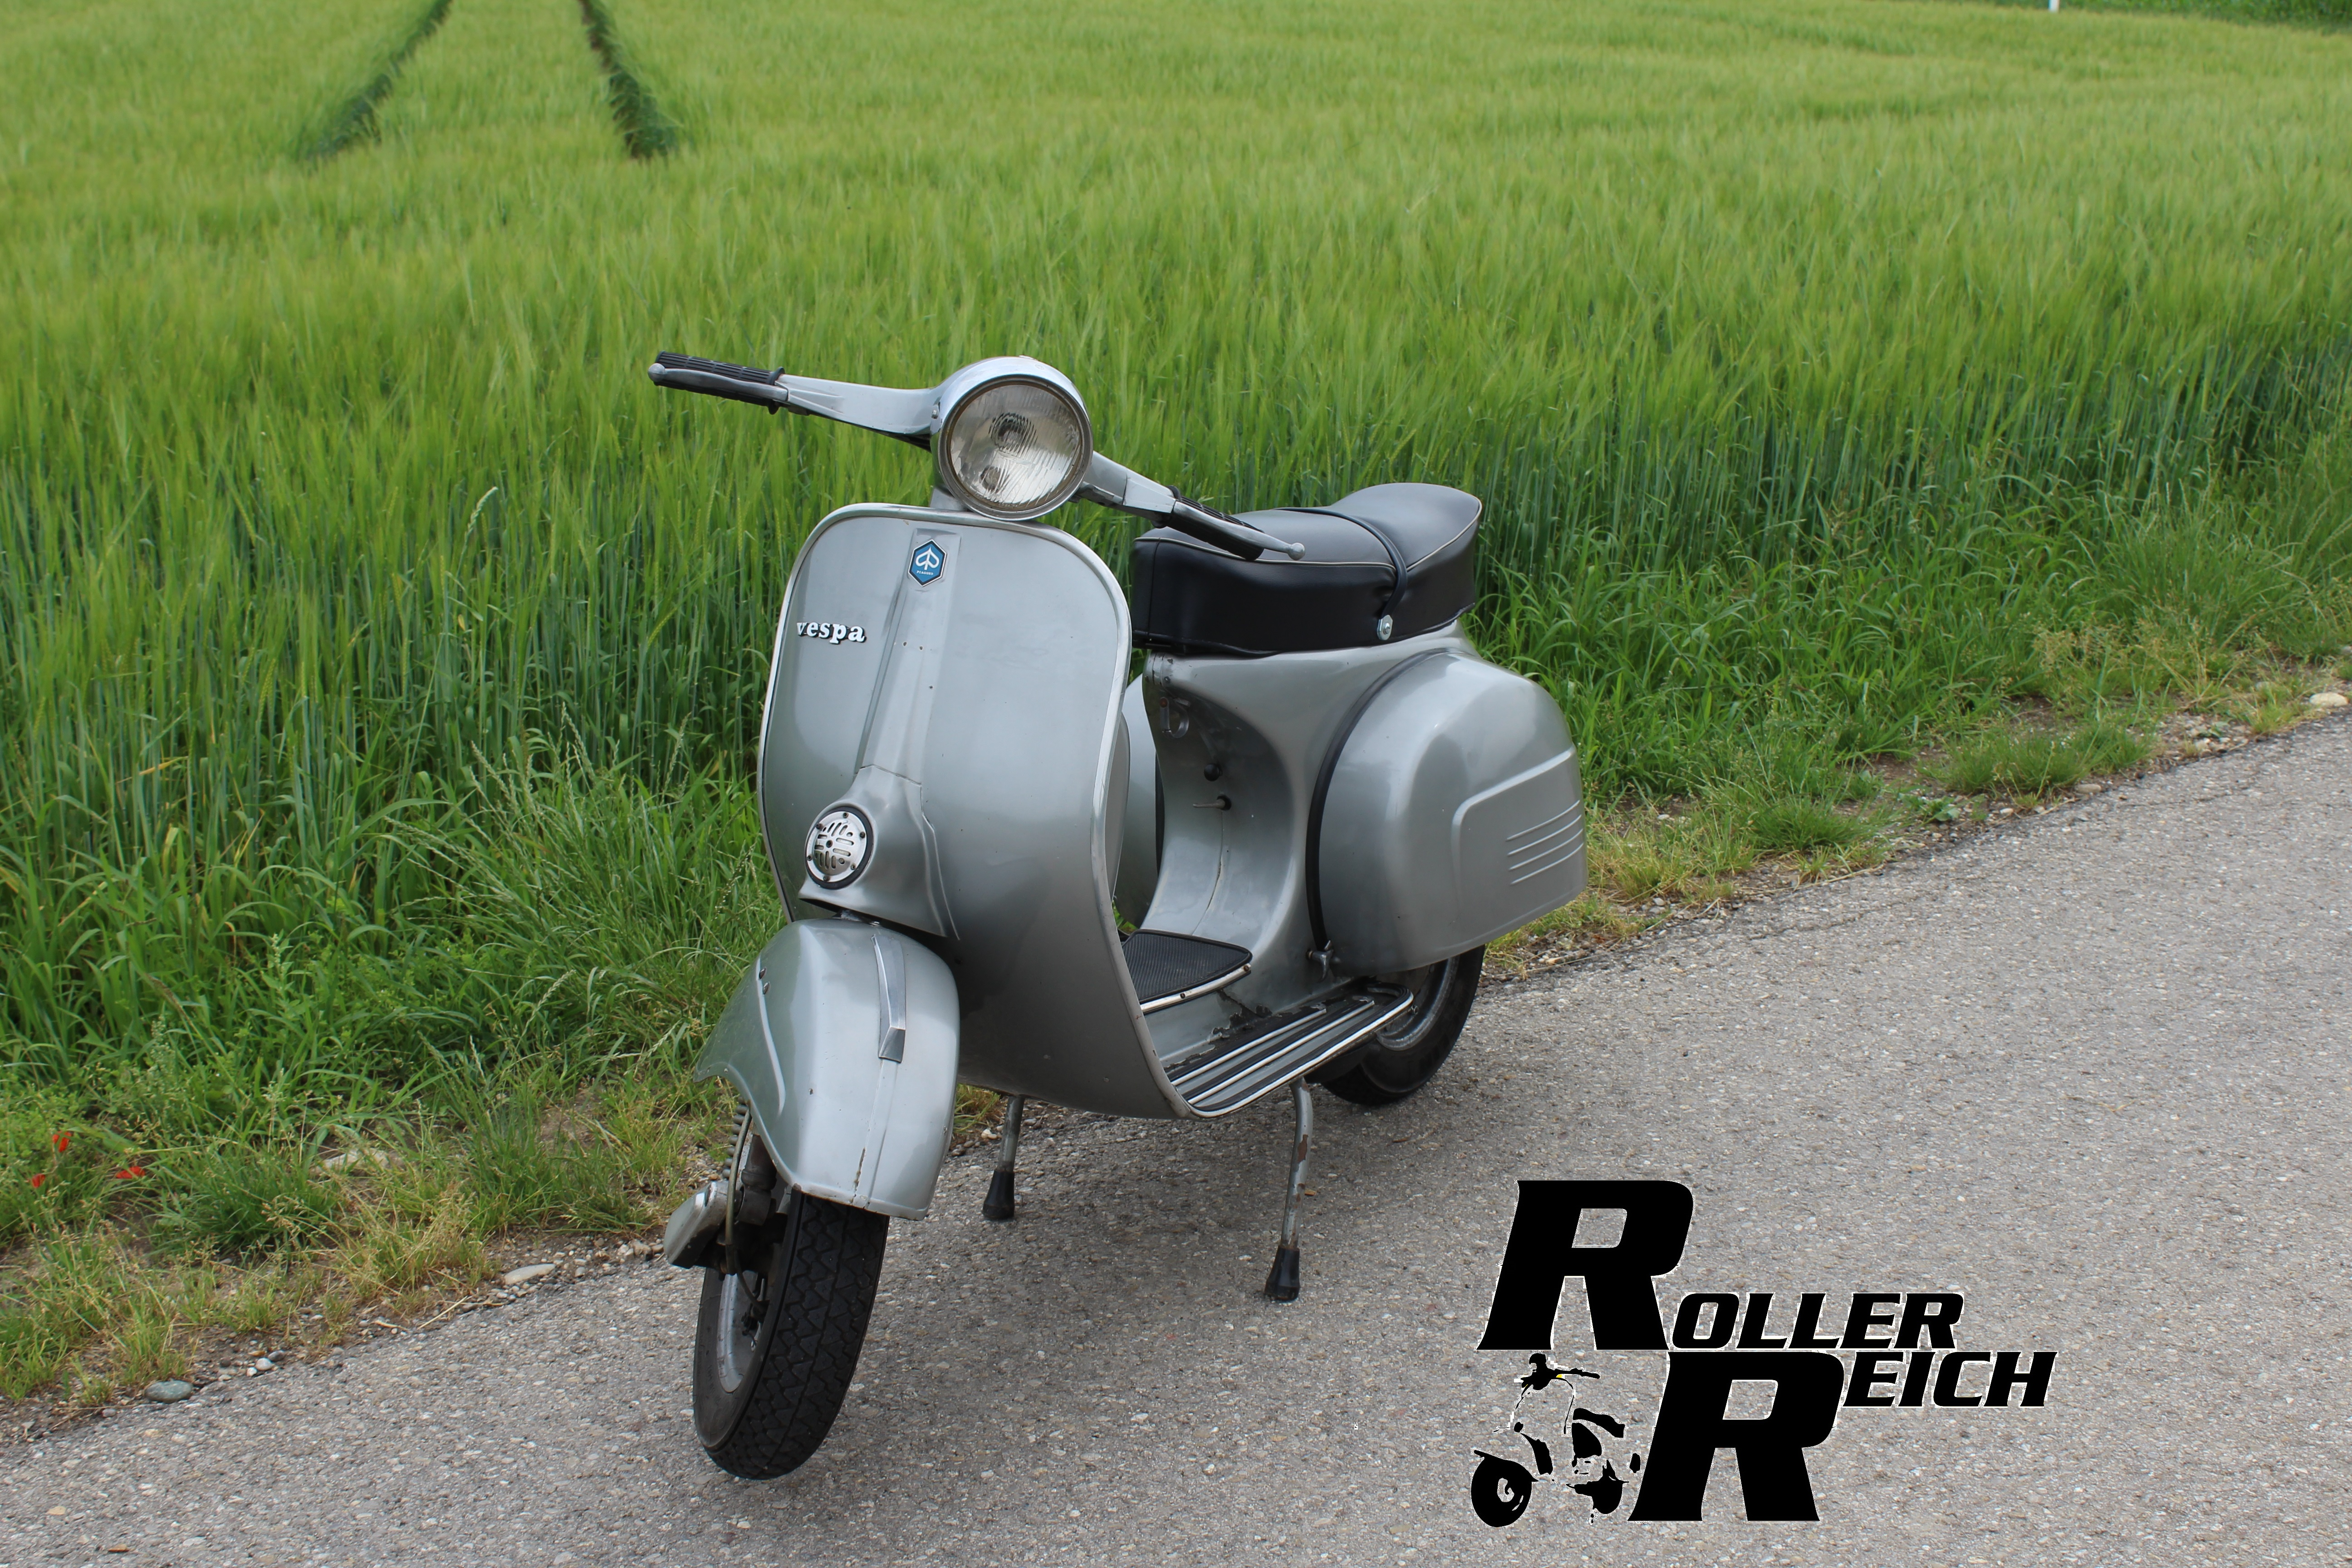 tl_files/Vespa 125/IMG_2096.JPG